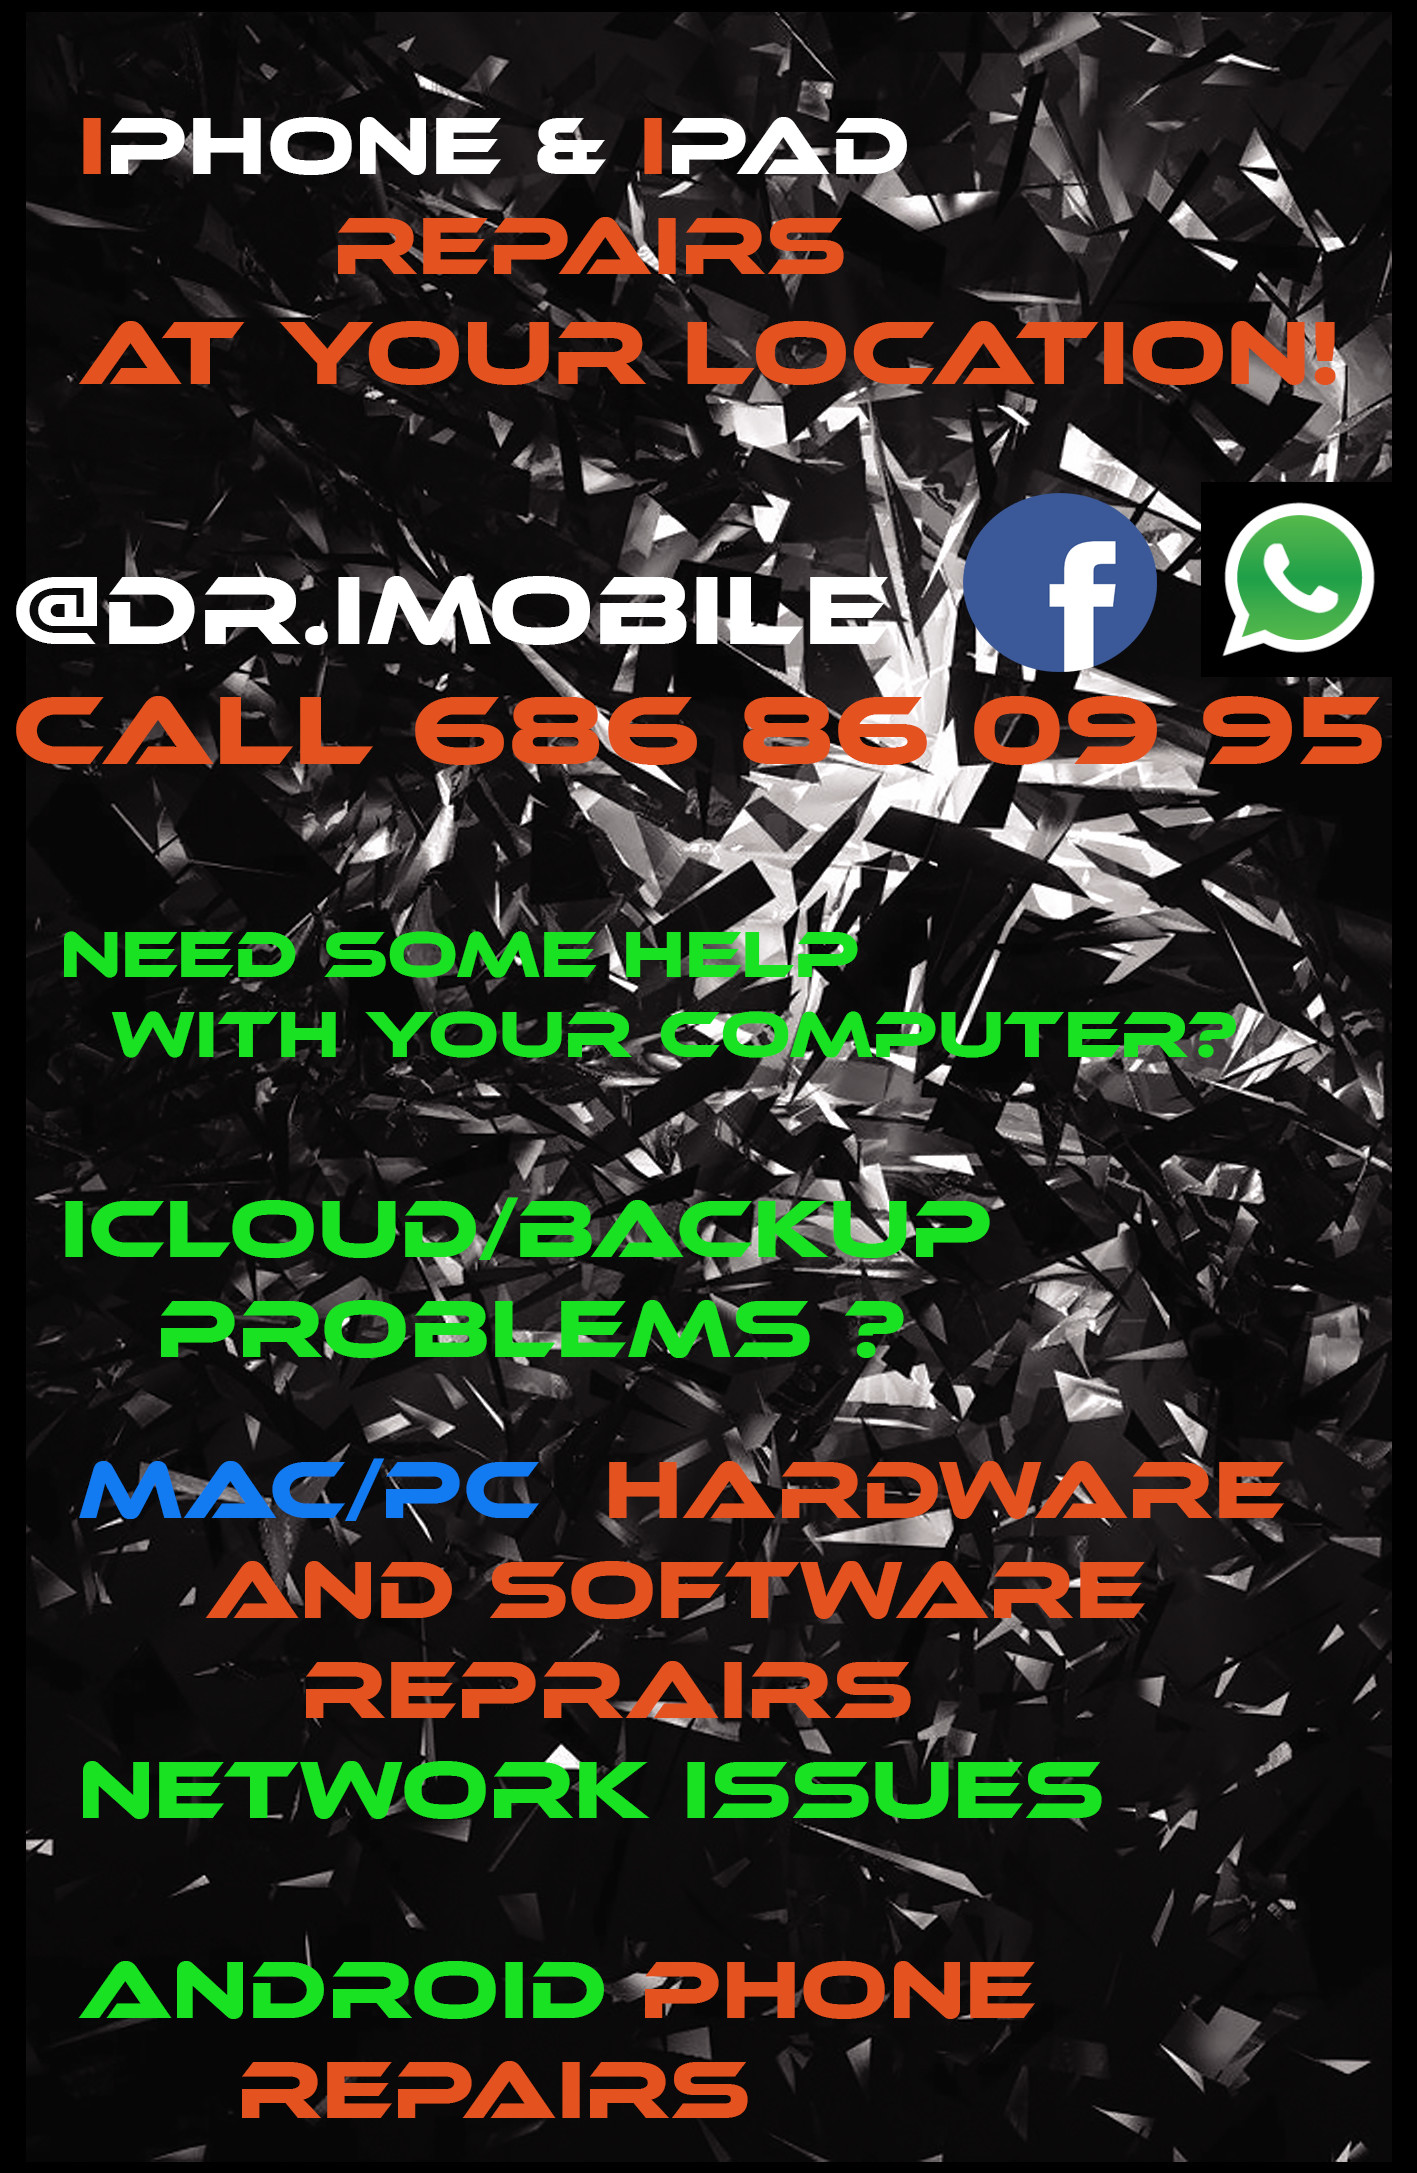 DriMobile In Aspe Address Telephone Number And Opening Hours